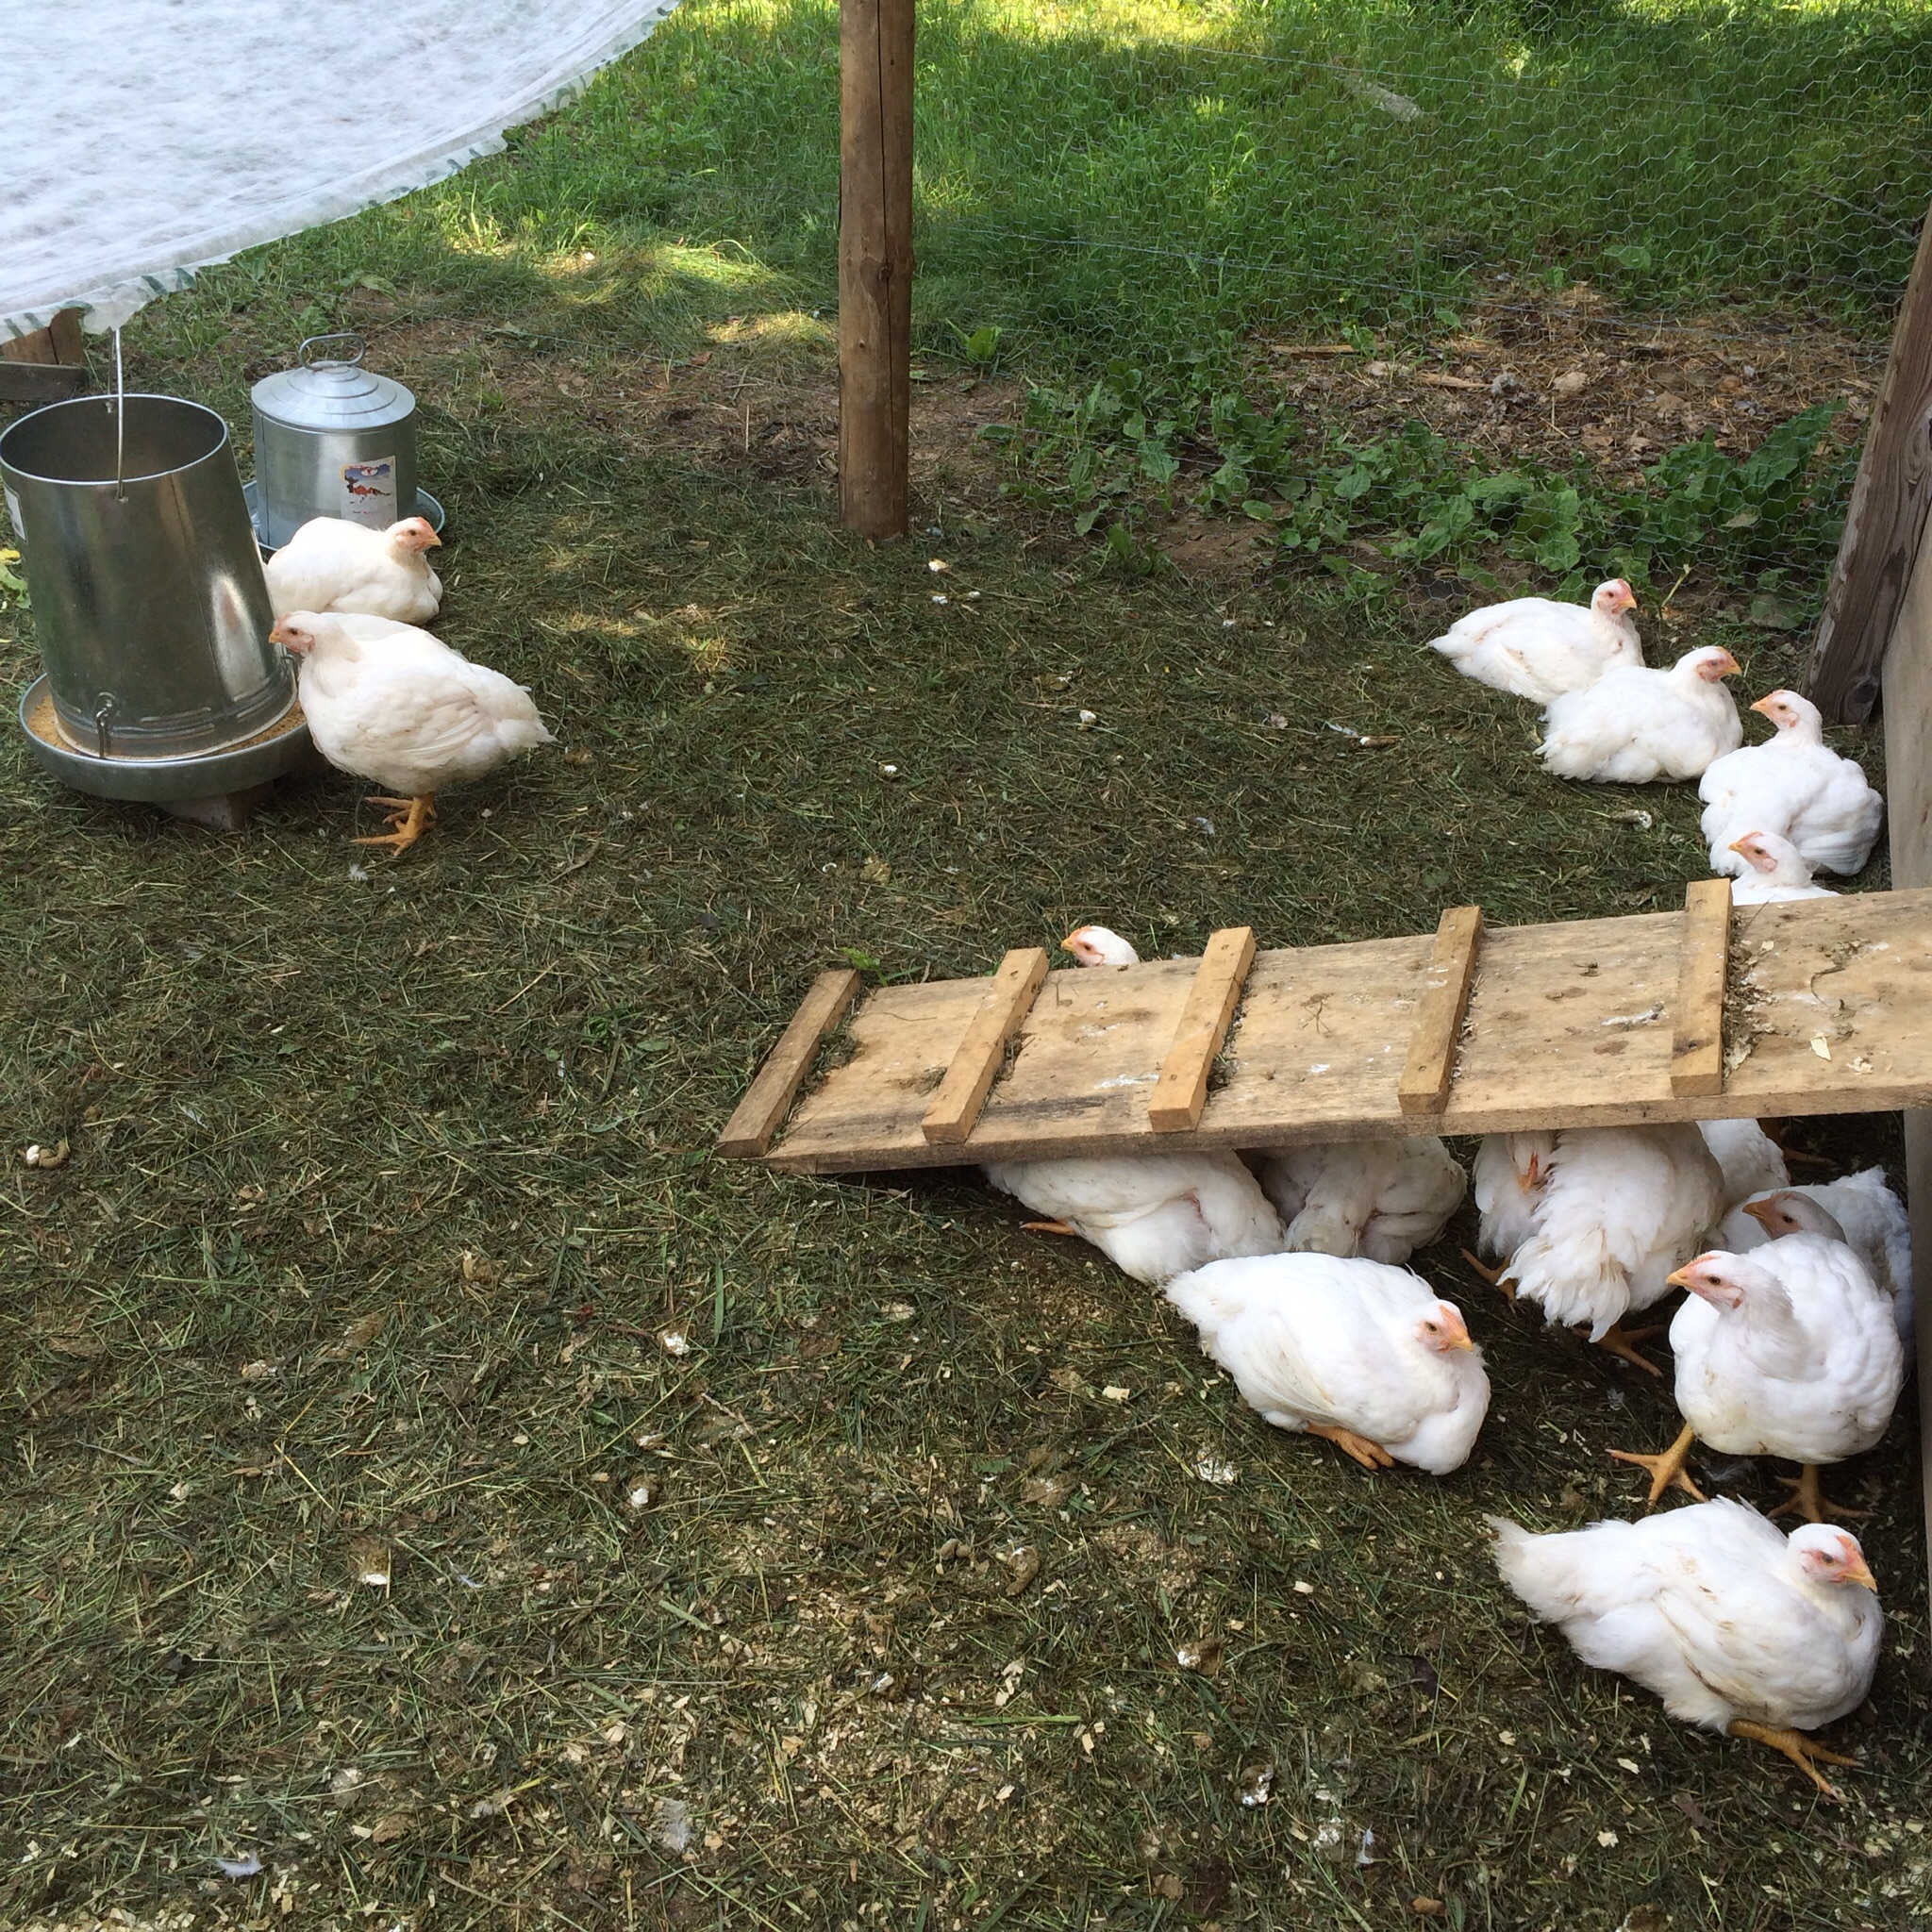 My parents raised all sorts of animals when I was little and are now just getting back into having livestock, starting with two dozen broiler chickens